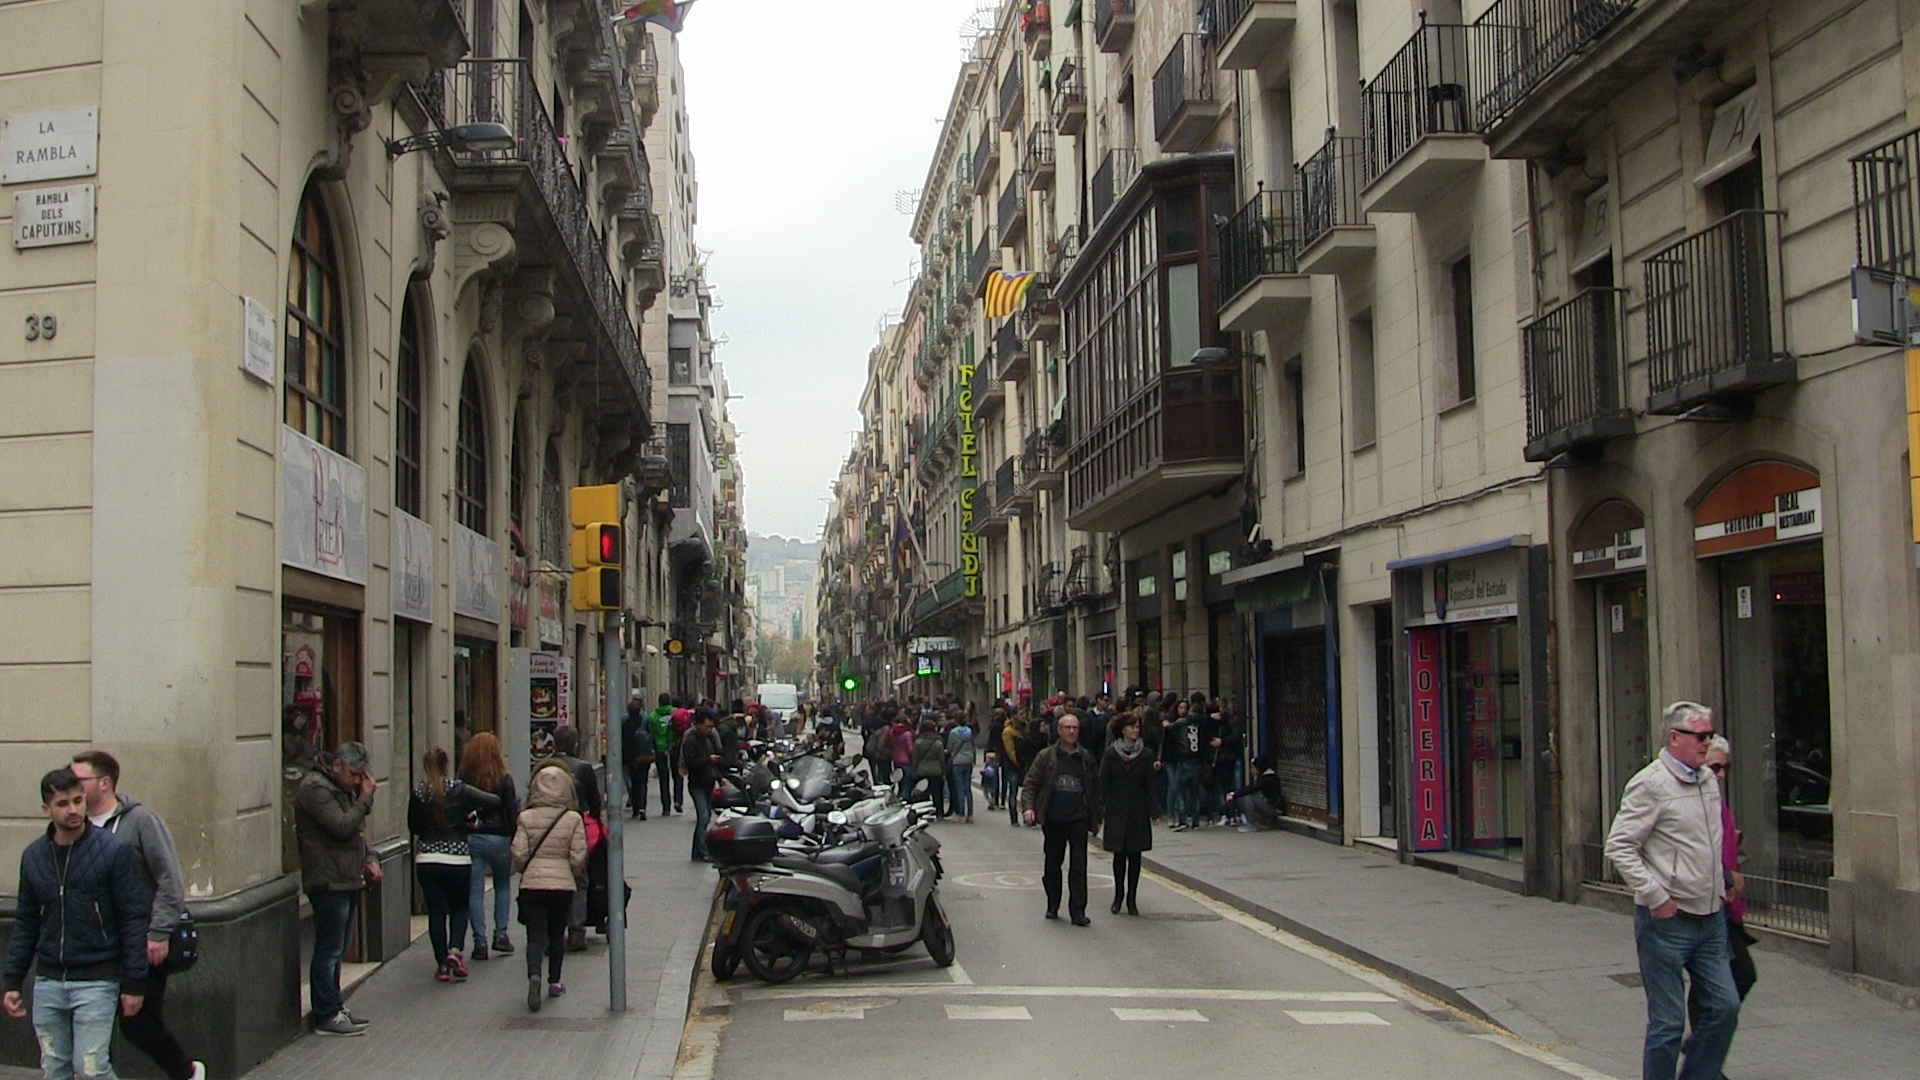 Crowded Street in Barcelona, Spain